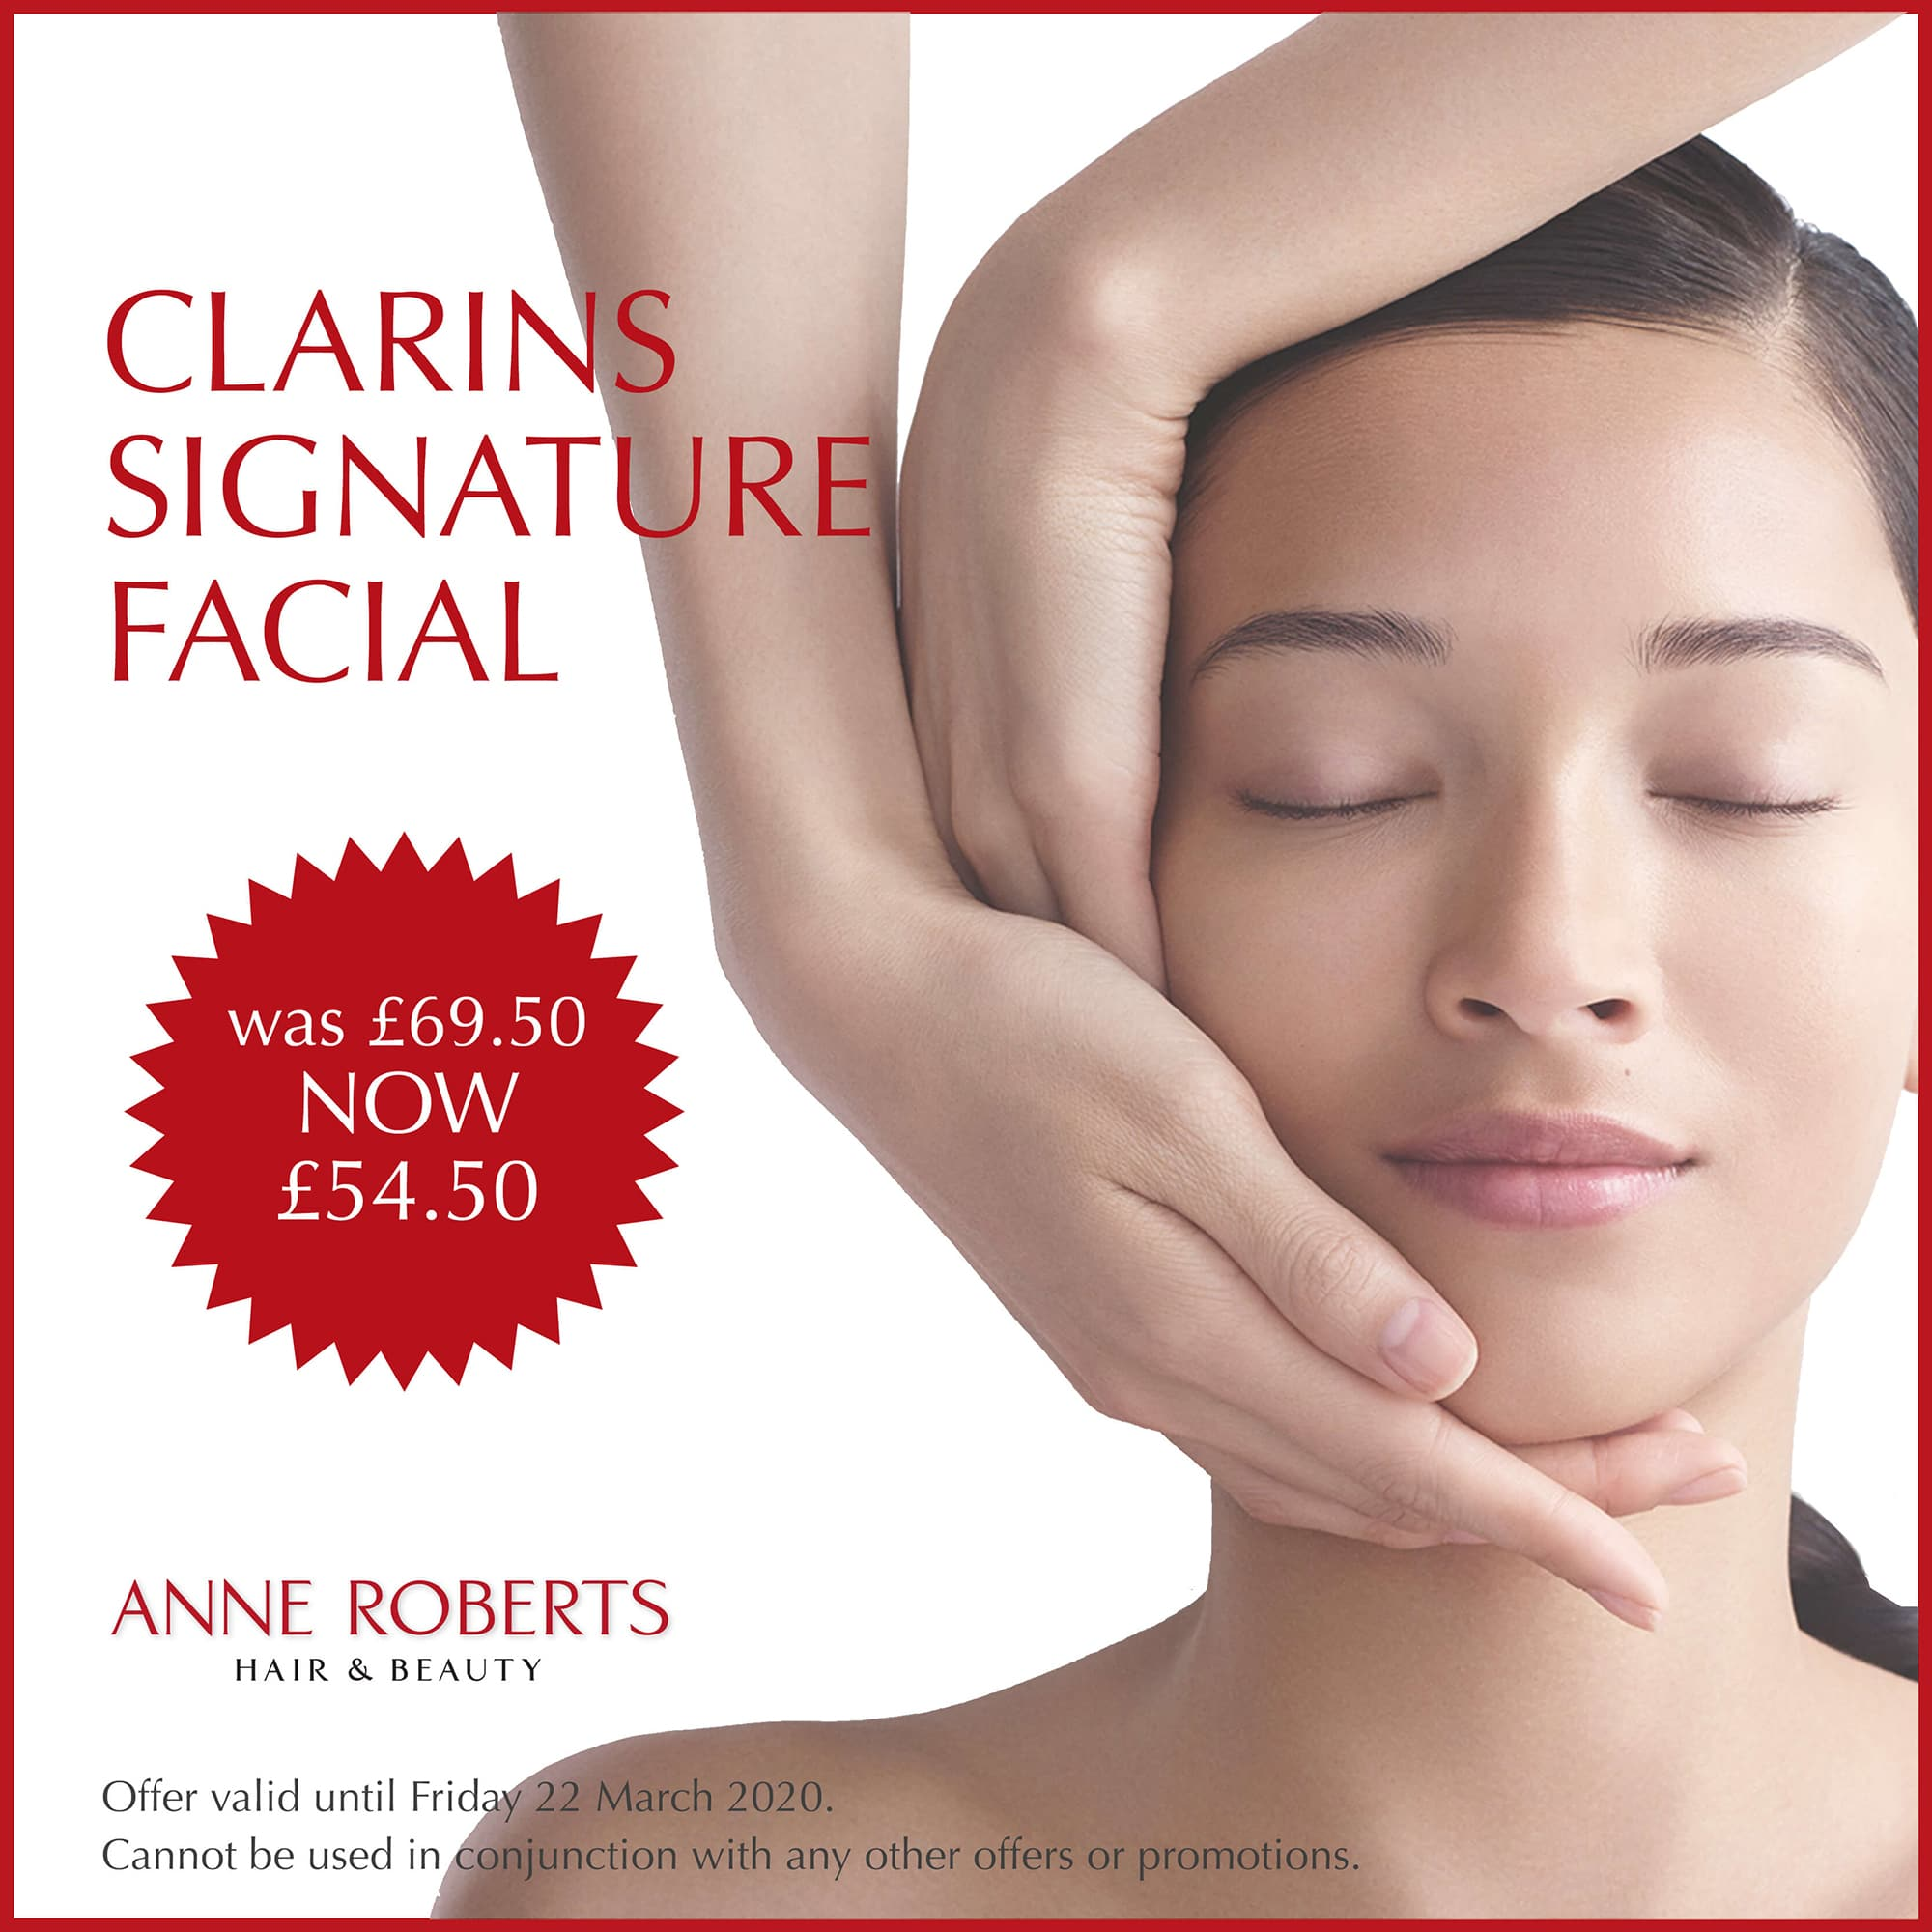 image of lady recieving face massage with details of an offer